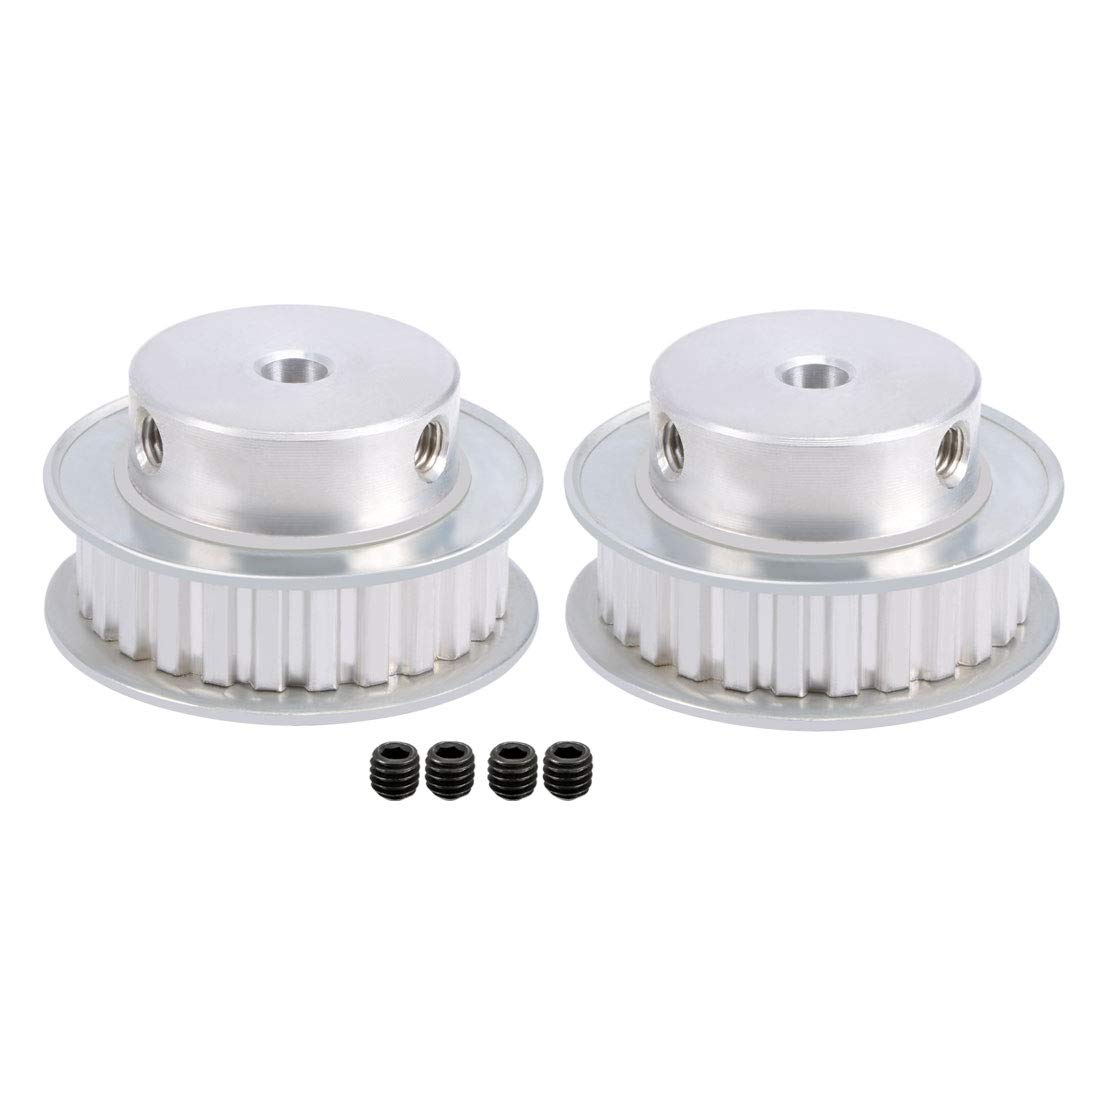 Uxcell Aluminum Xl 15 Teeth 6mm Bore Timing Belt Pulley Flange Cnc Belts And Pulleys Synchronous Wheel For 10mm 3d Printer A18060700ux0416